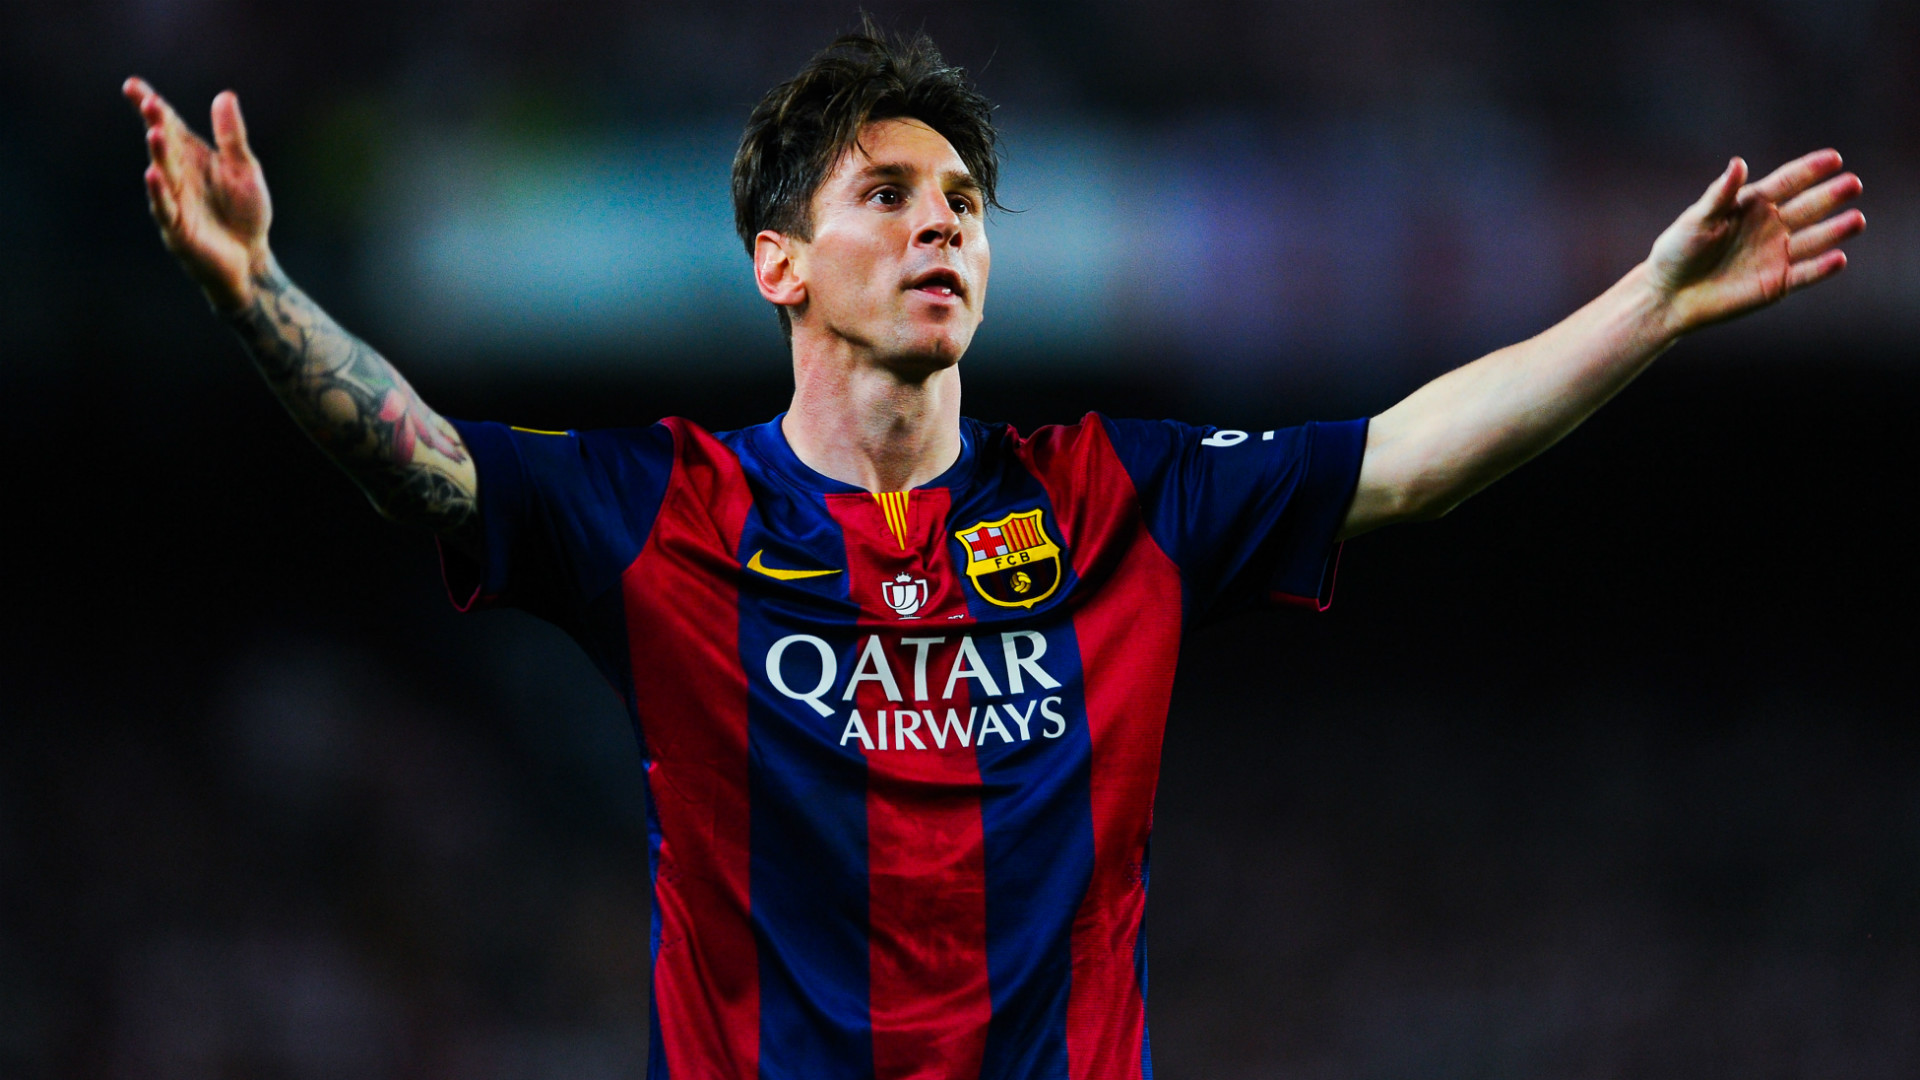 Leo Messi What Is Lionel Messi 39s Net Worth And How Much Does The